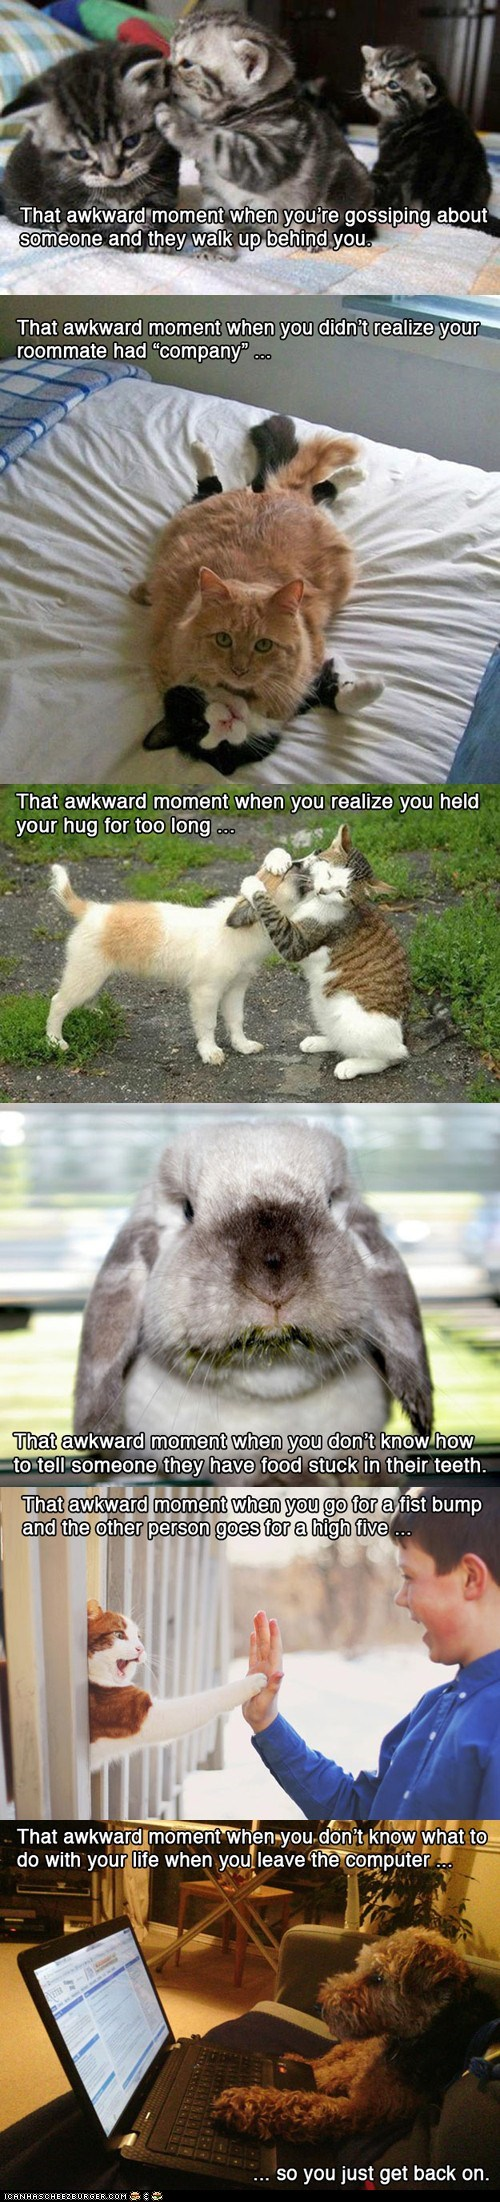 Awkward Animal Moments